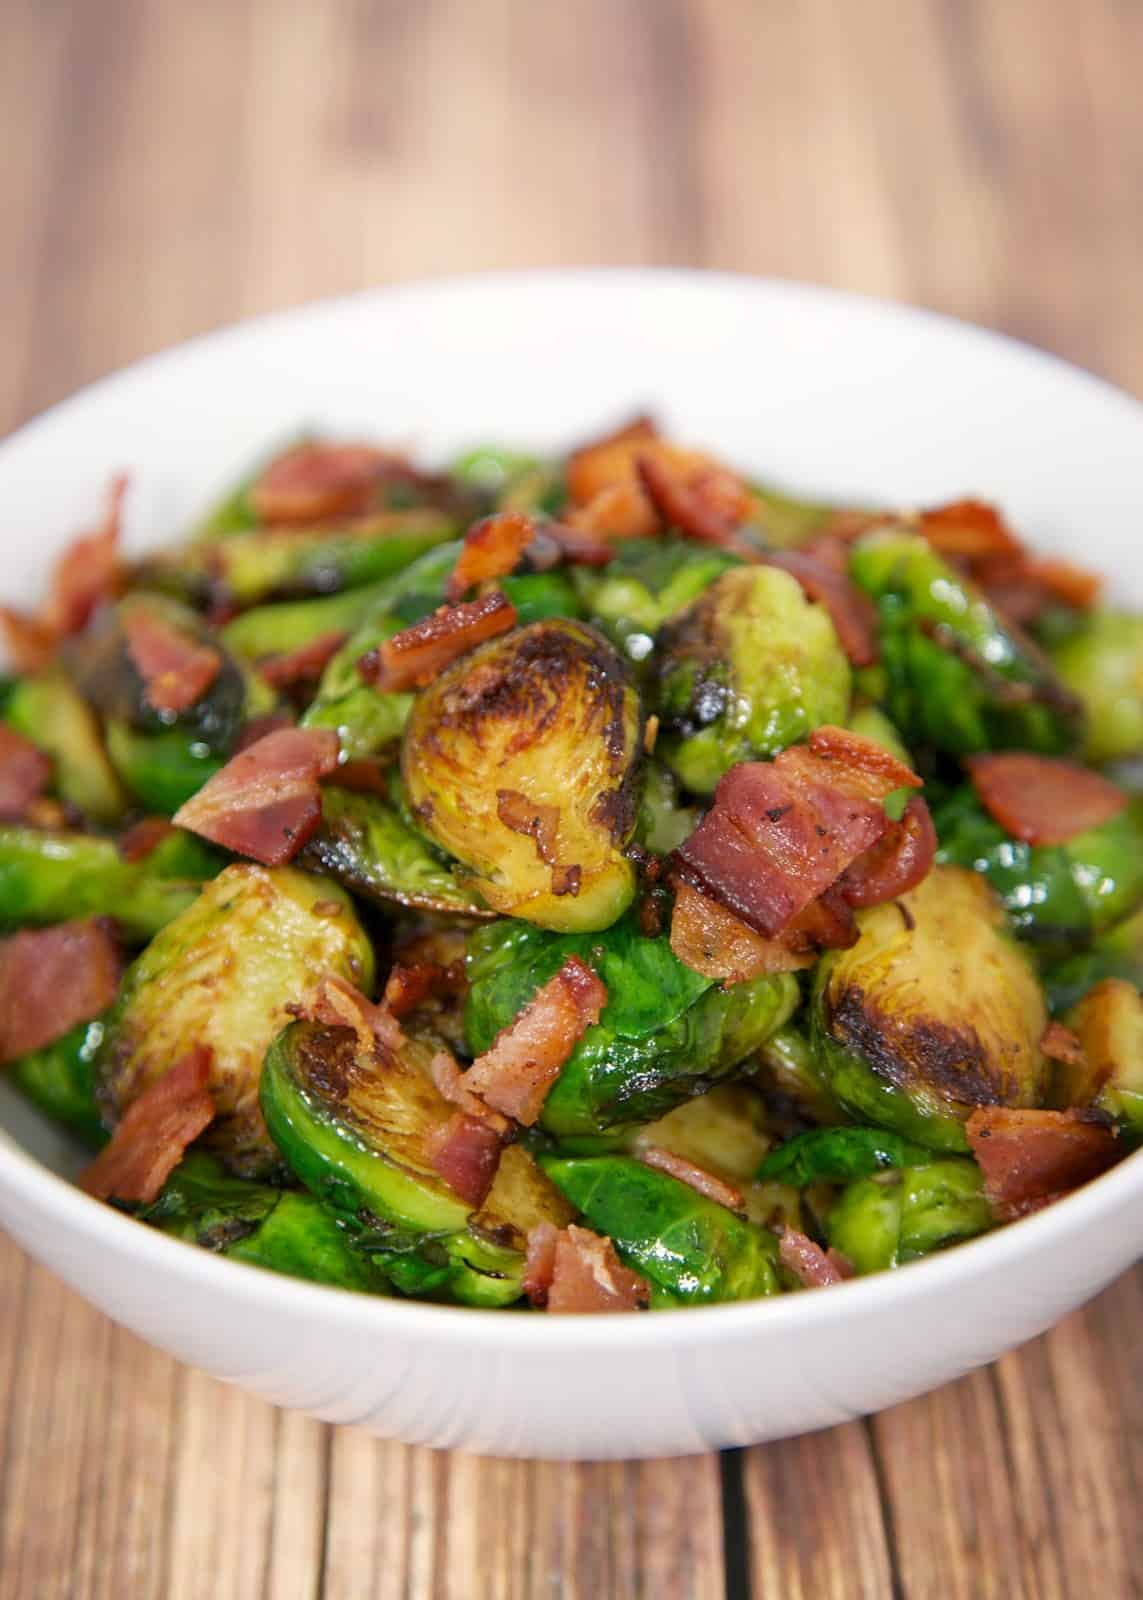 Sautéed Brussels Sprouts with Bacon - just like our favorite restaurant! Ready in about 10 minutes! Great weeknight side dish.